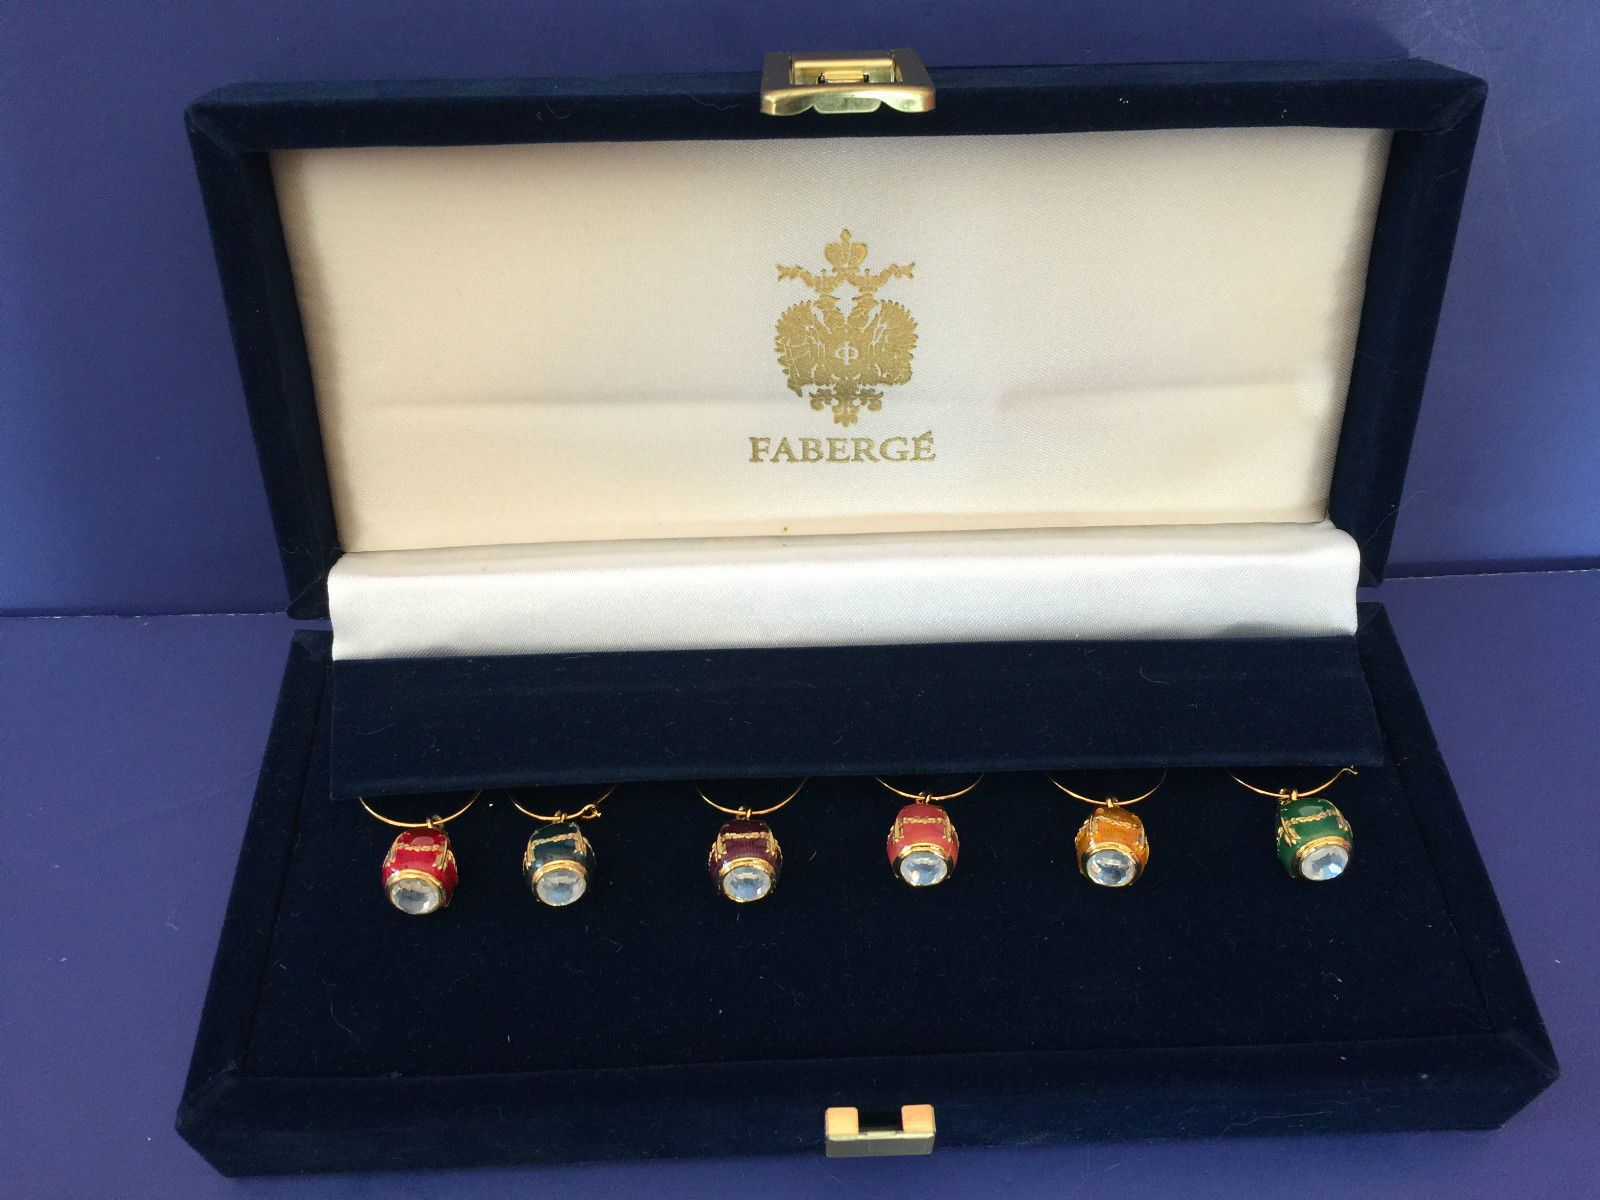 Faberge Egg Enameled Wine Glass Marker Charms In Faberge Presentation